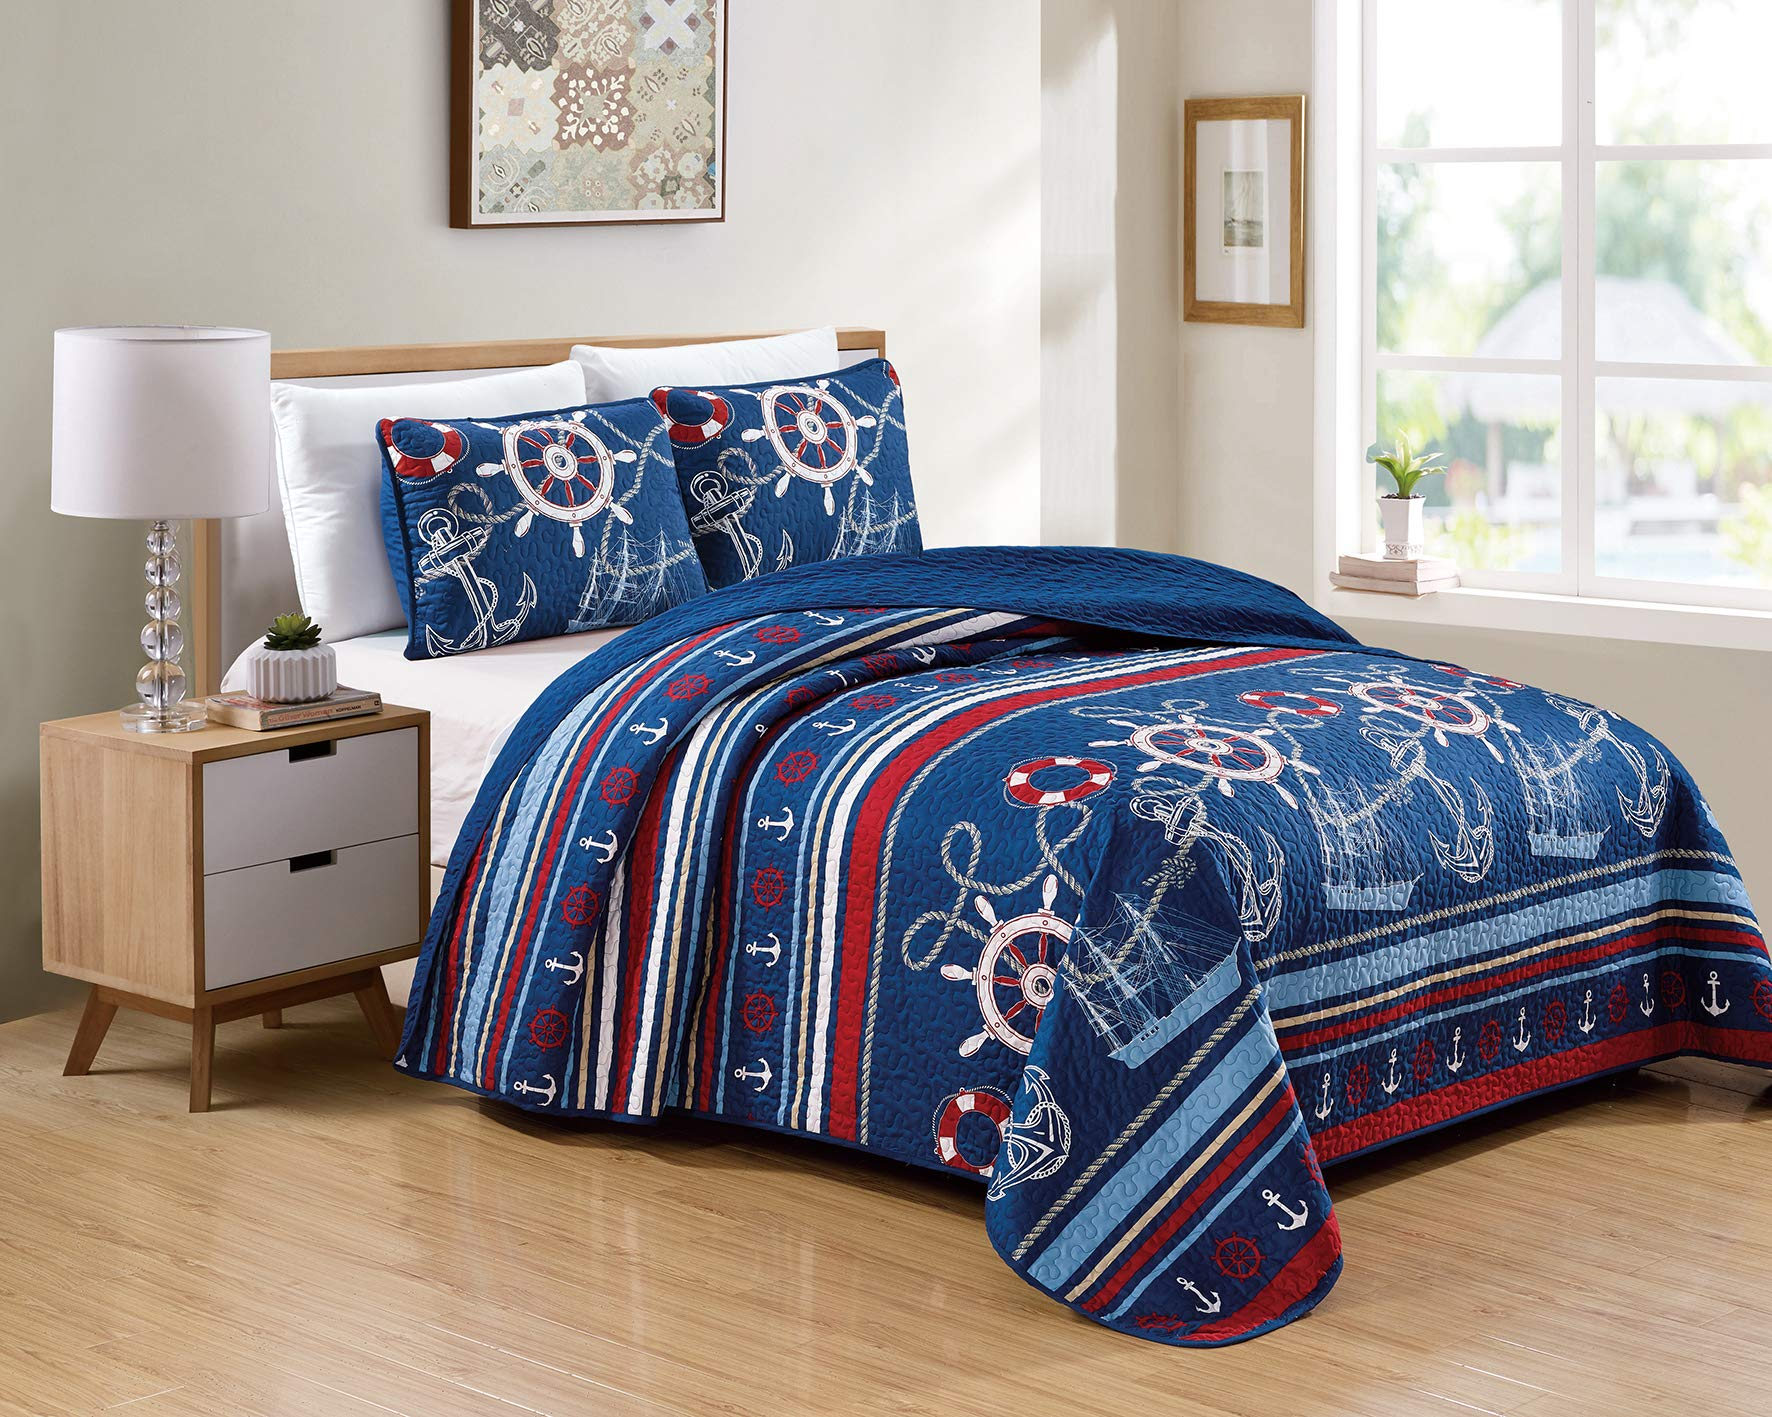 Kids Zone Home Linen 2 Piece Twin/Twin Extra Long Bedspread Set Navy Blue Red White Ships Rope Anchor Stripes. by Kids Zone Home Linen